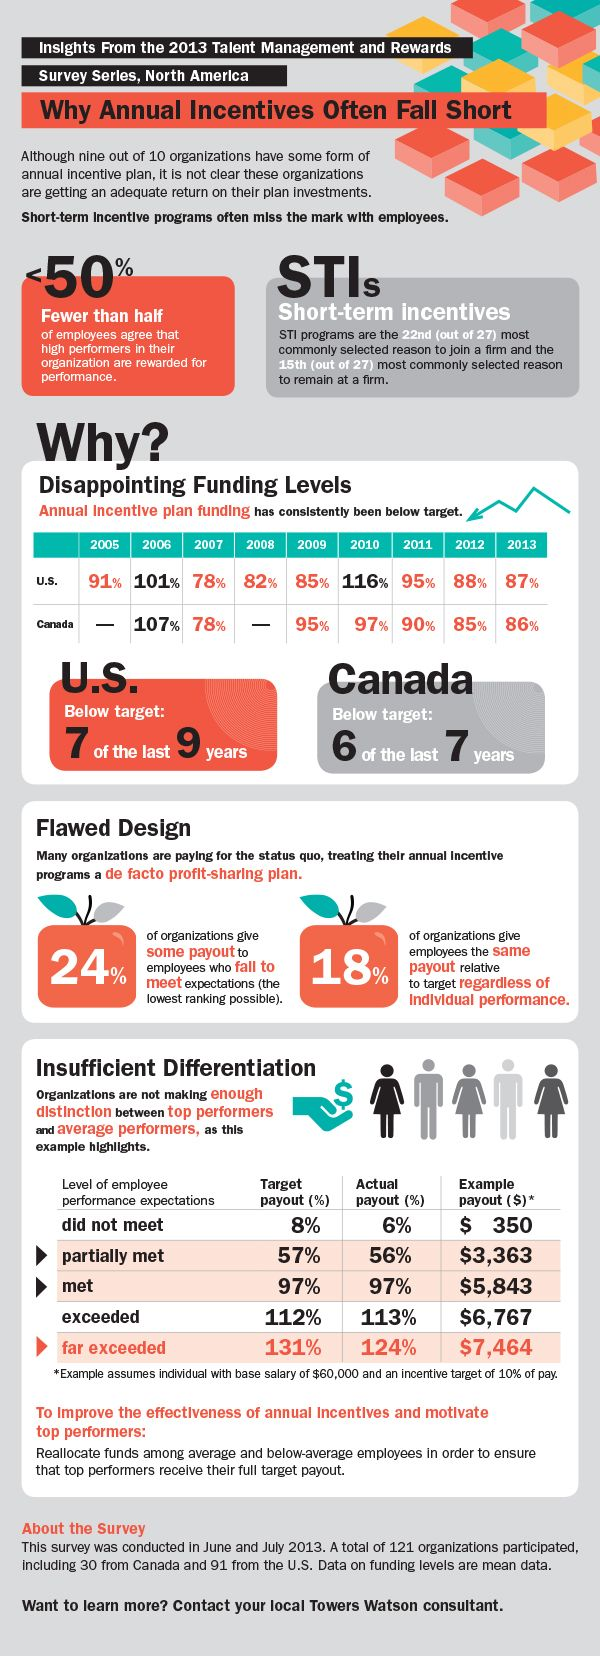 Here's why your incentive programs may be missing the mark (INFOGRAPHIC)